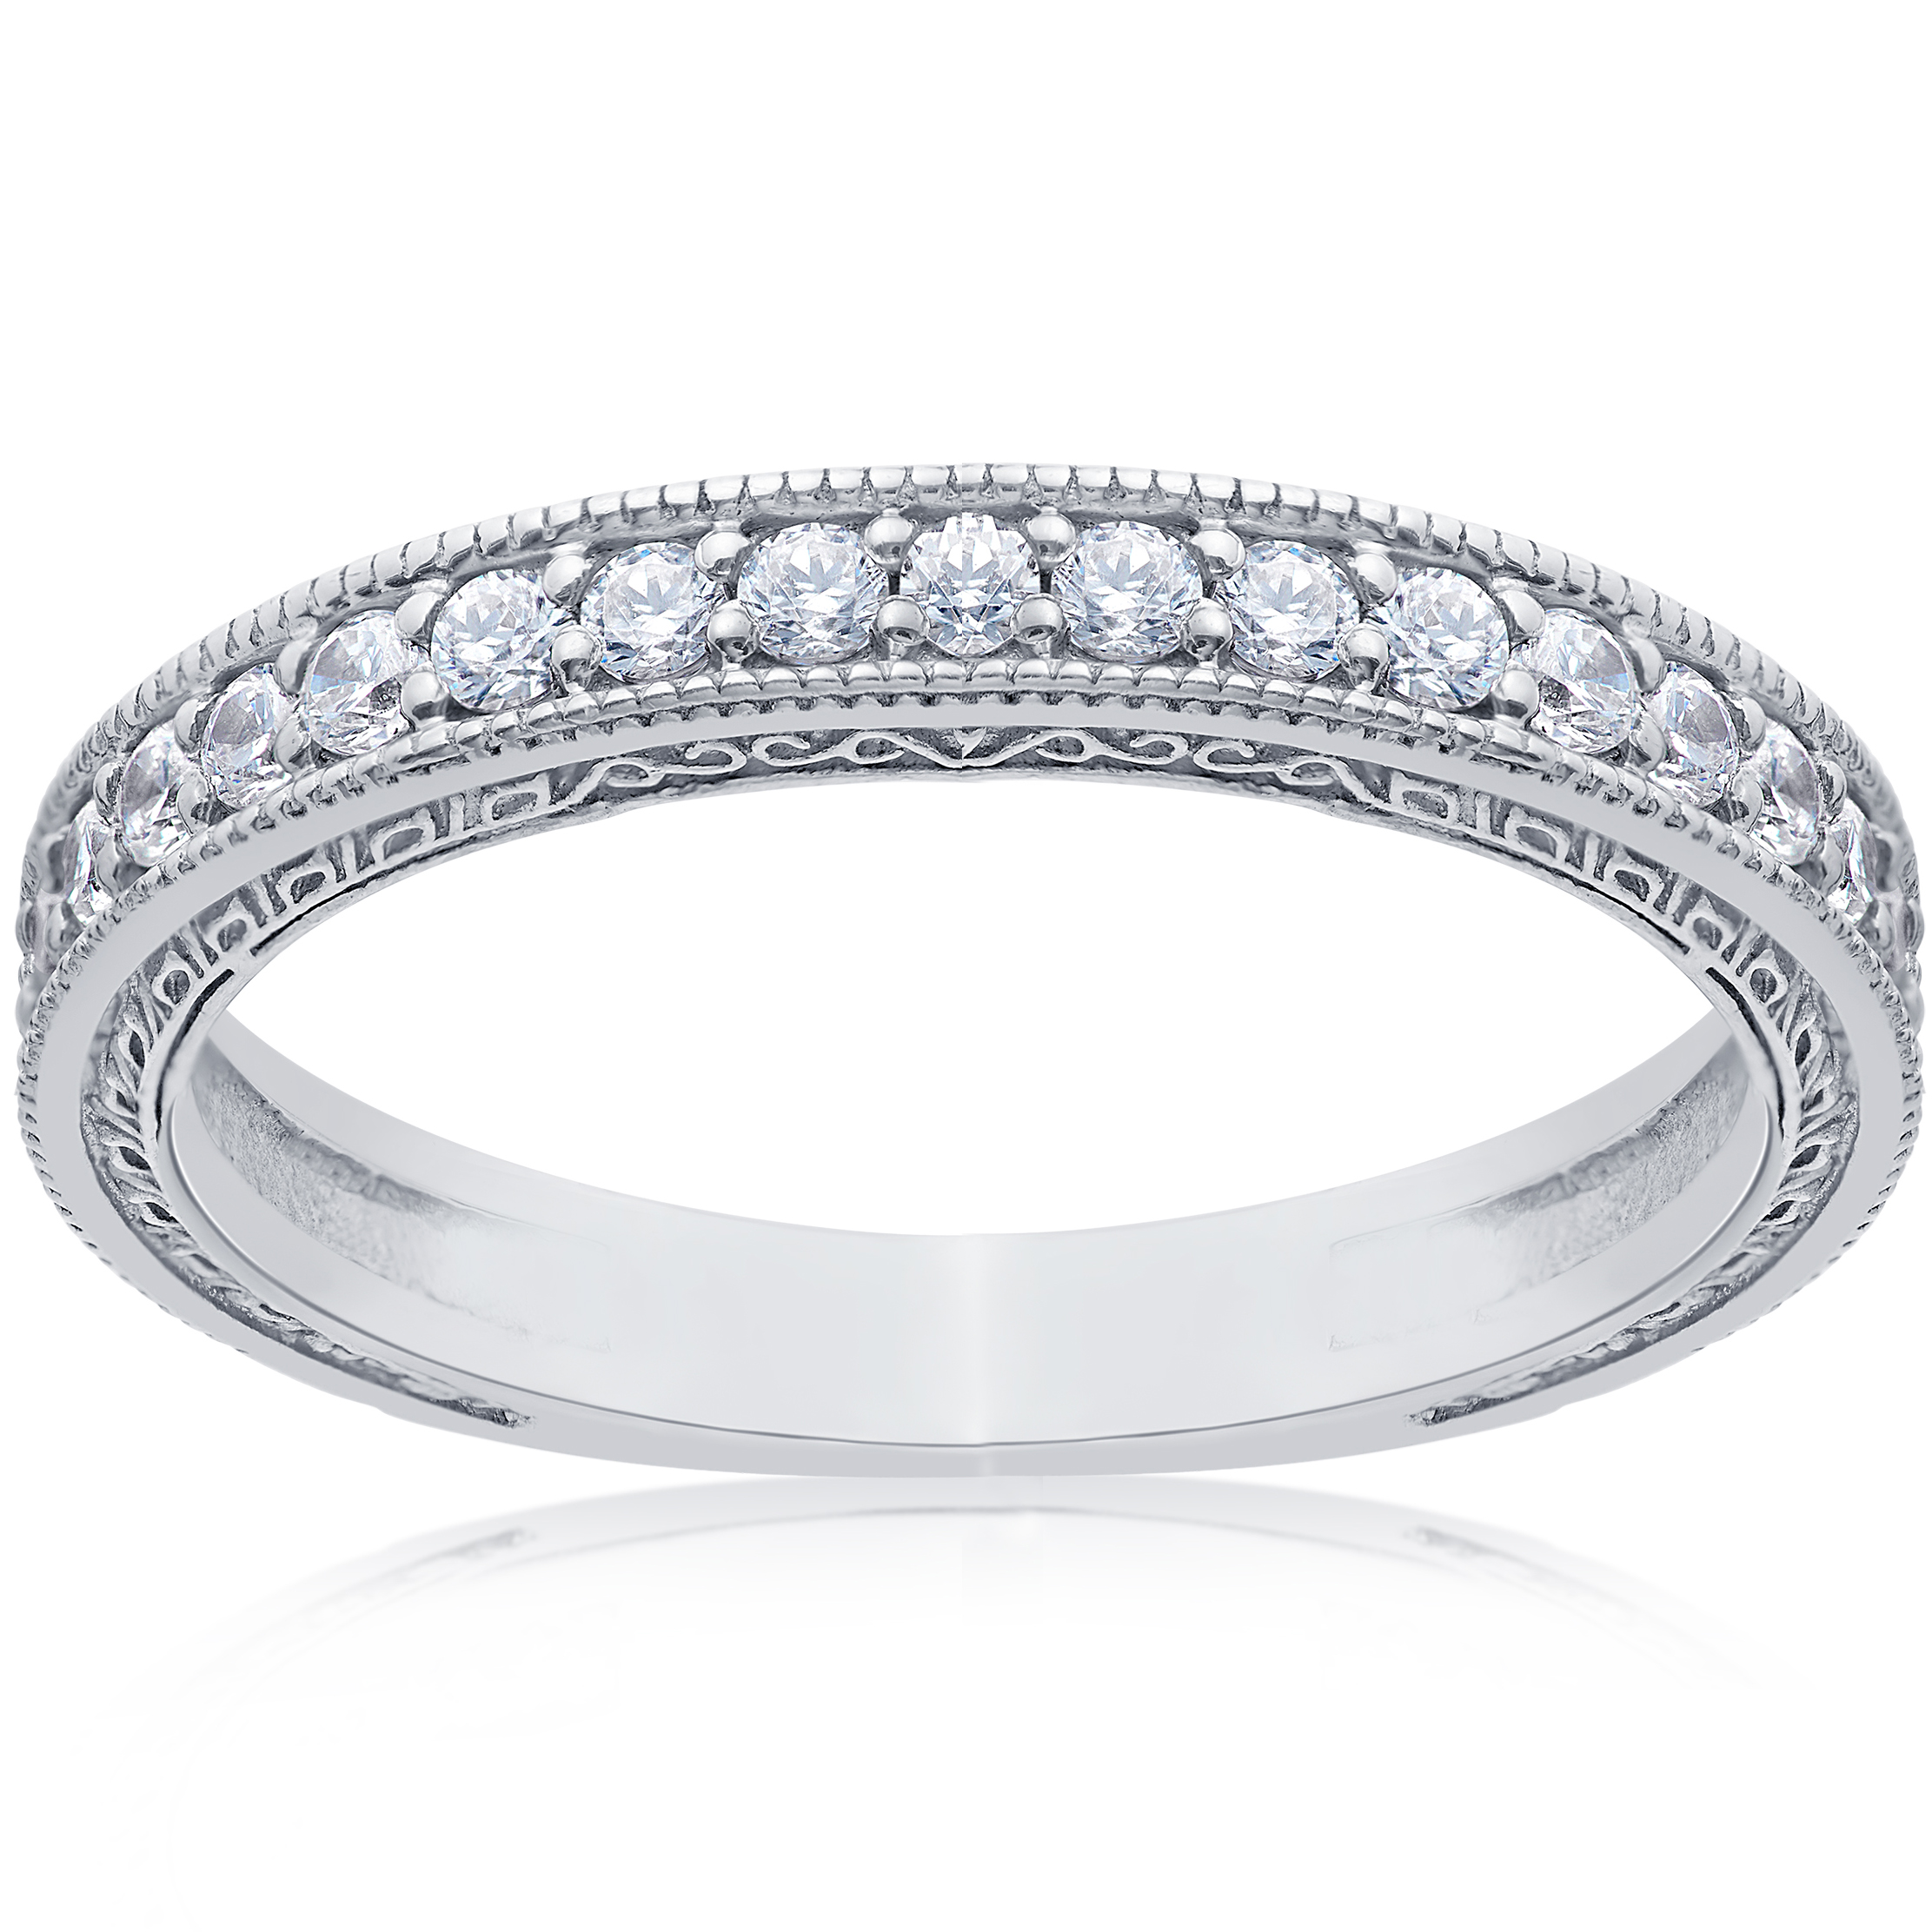 White Gold Wedding Rings For Women With Diamonds 1/2ct Vintage Diamond ...